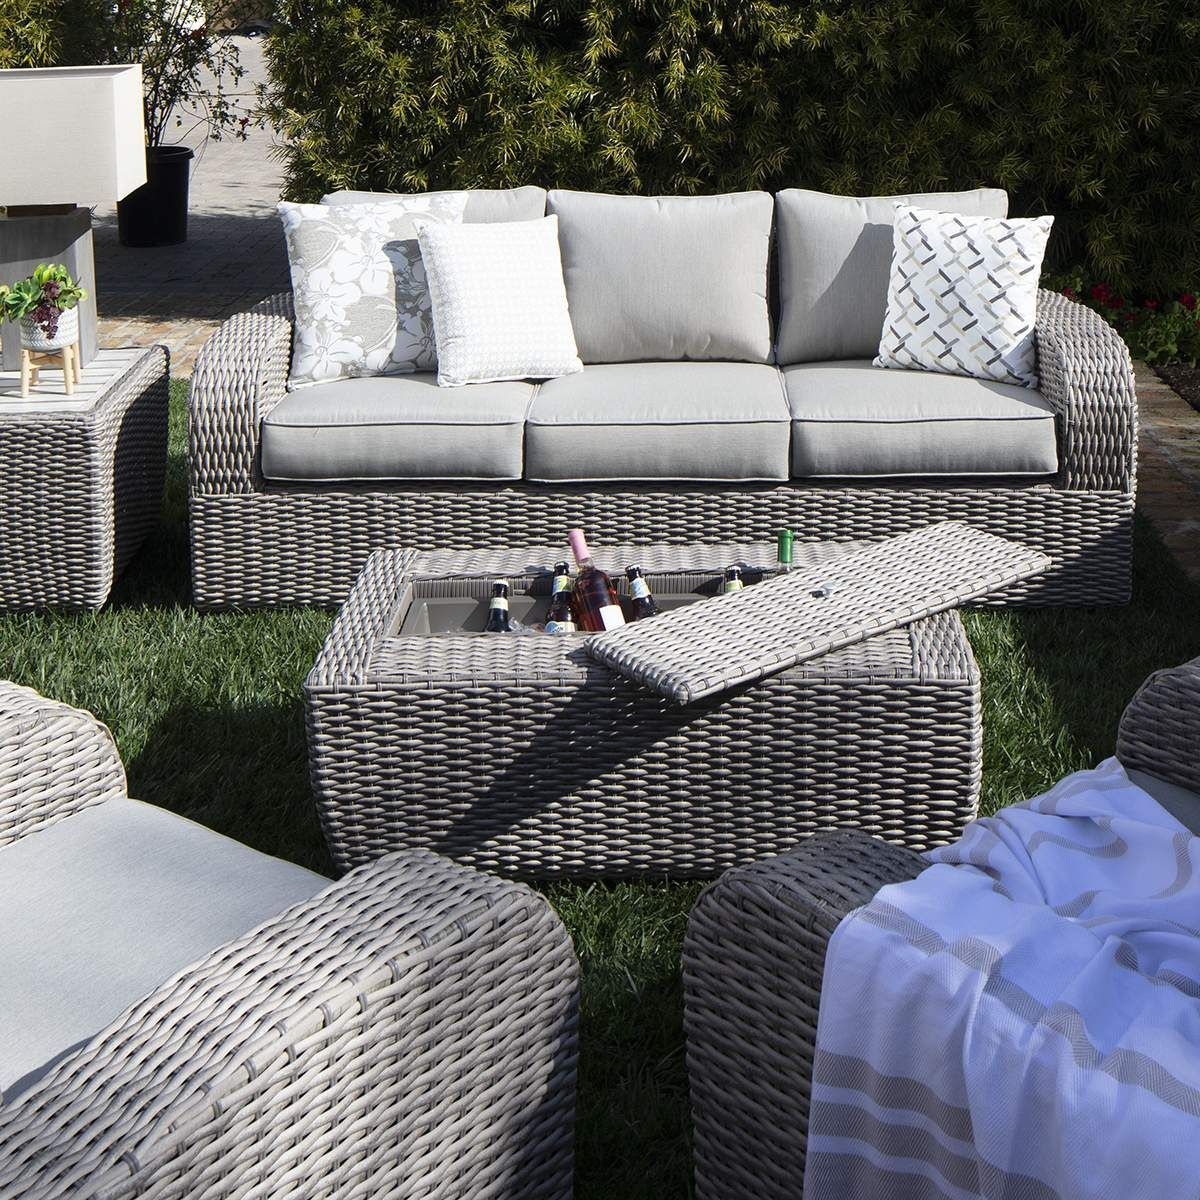 Grey Outdoor Wicker Furniture Set With Sofa 2 Chairs Jerome S